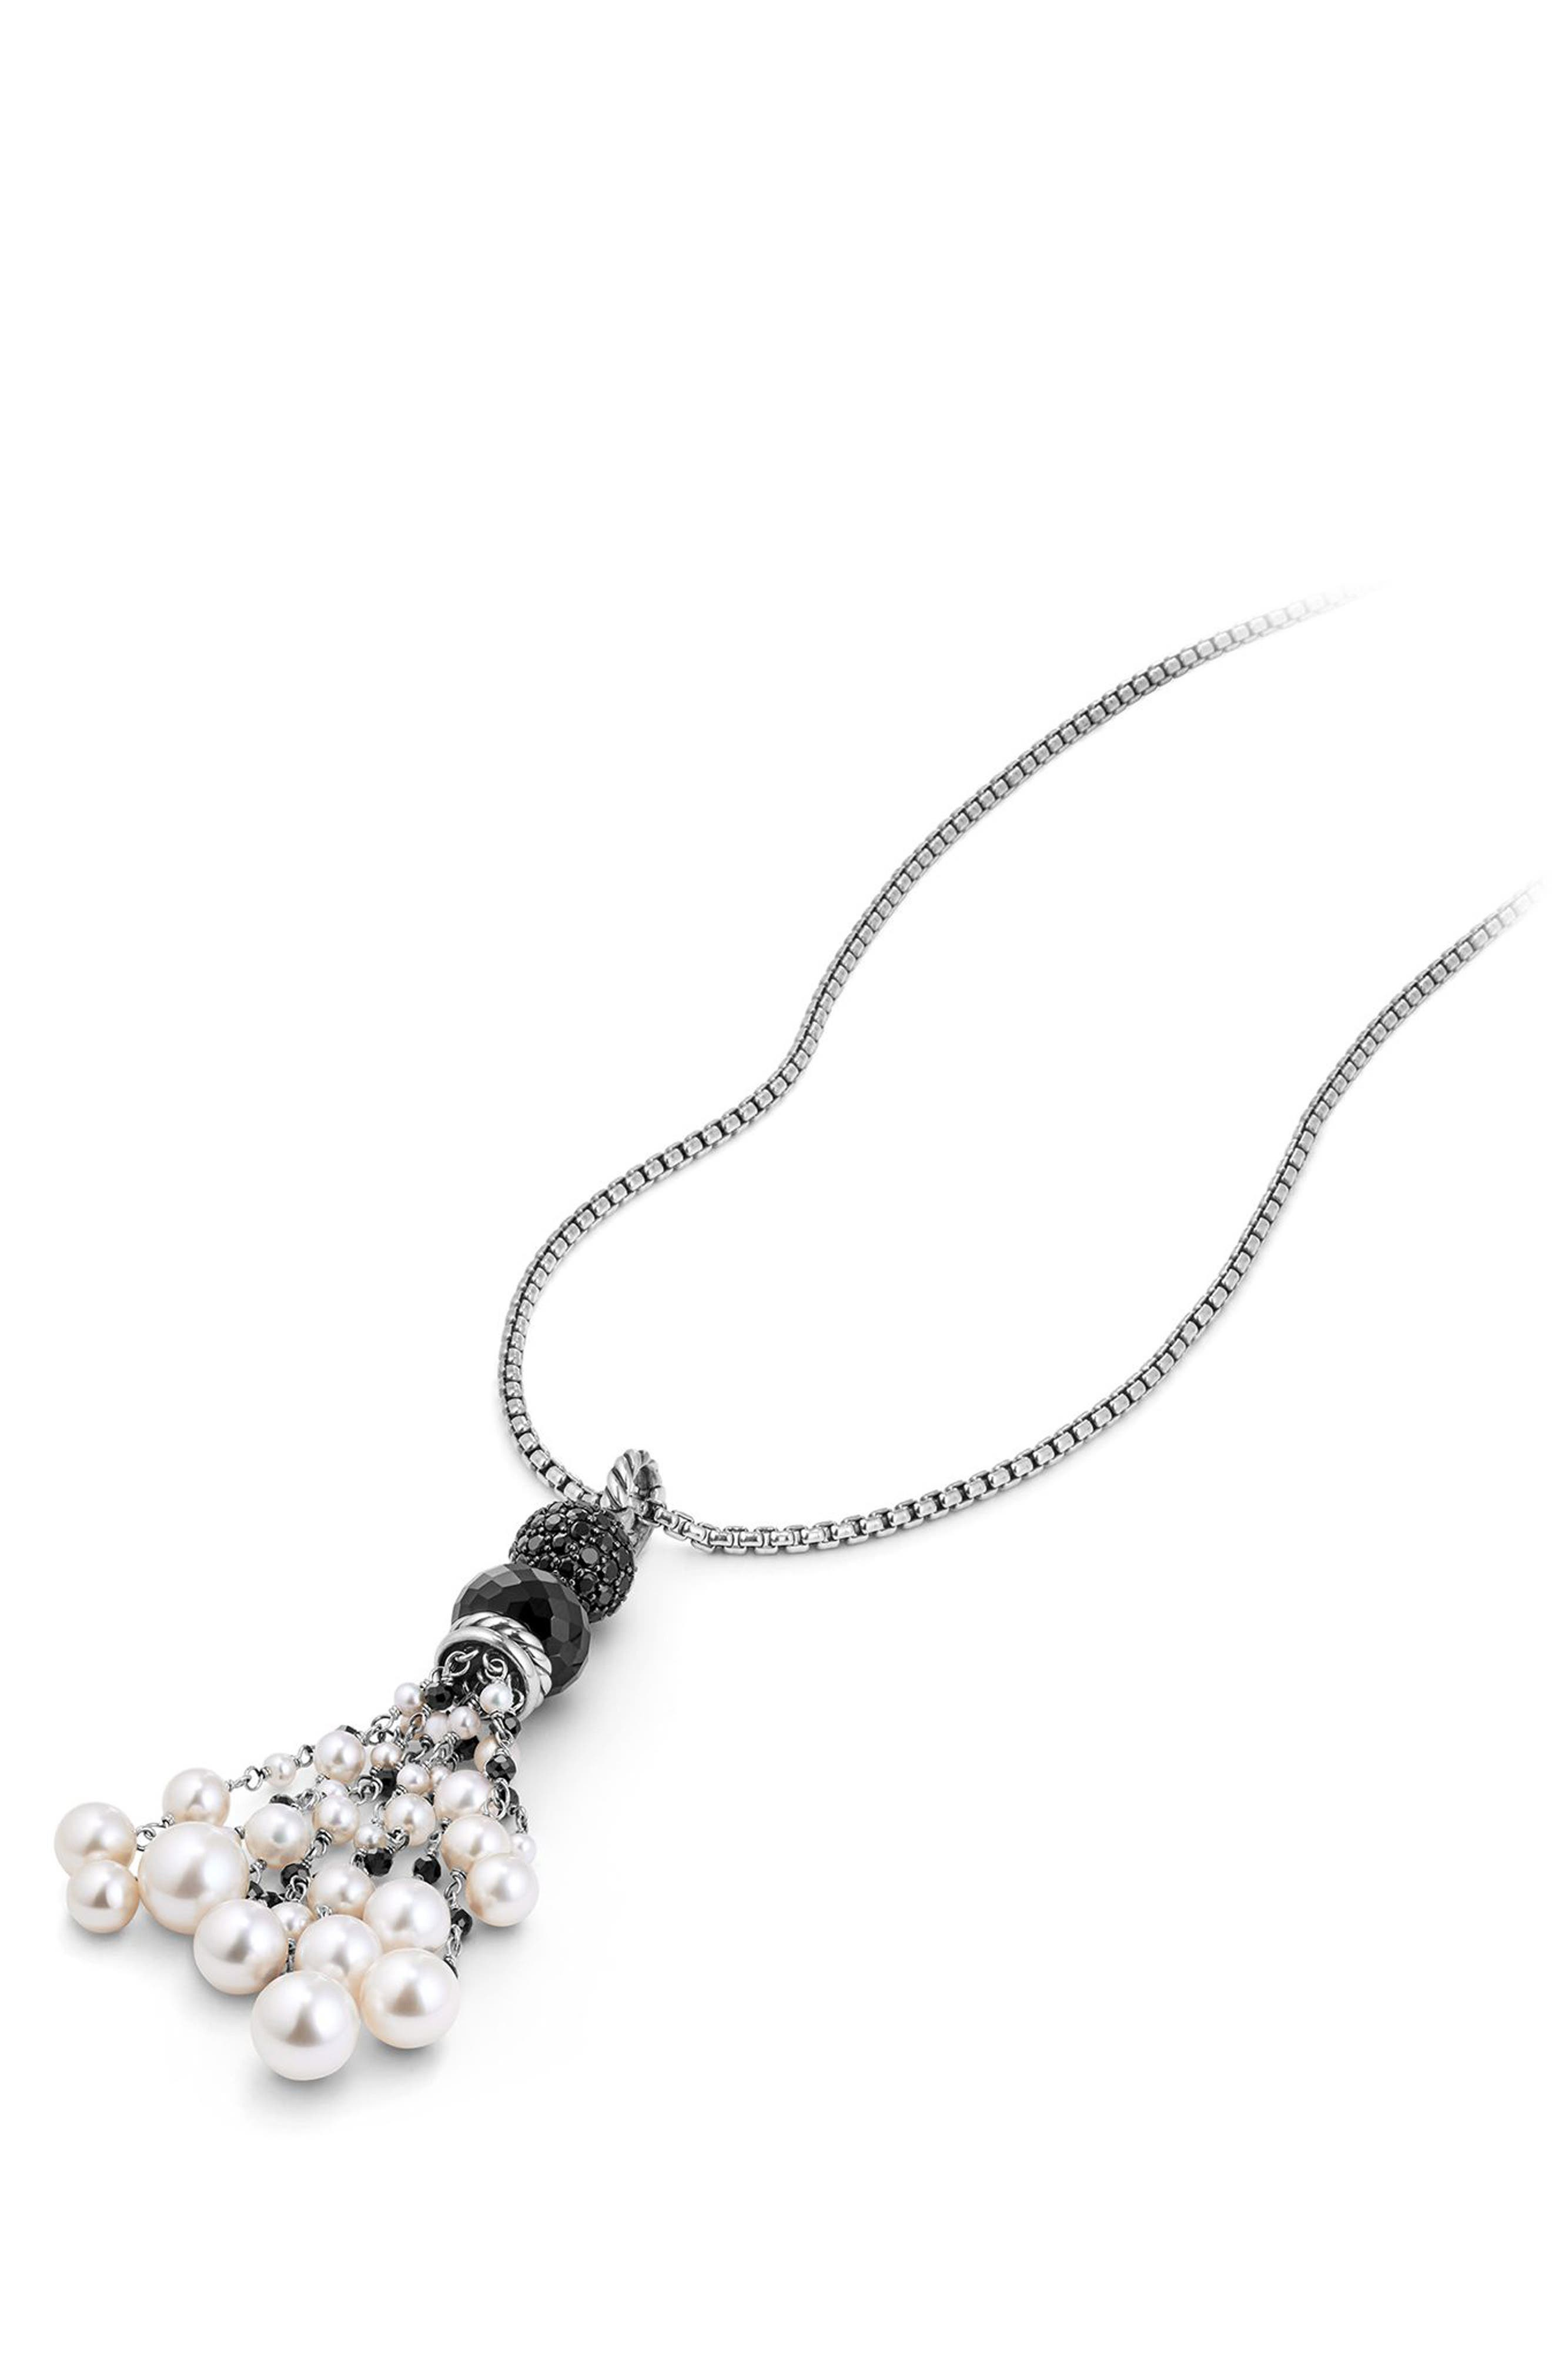 Oceanica Tassel Pendant with Black Onyx and Pearl,                             Alternate thumbnail 2, color,                             040